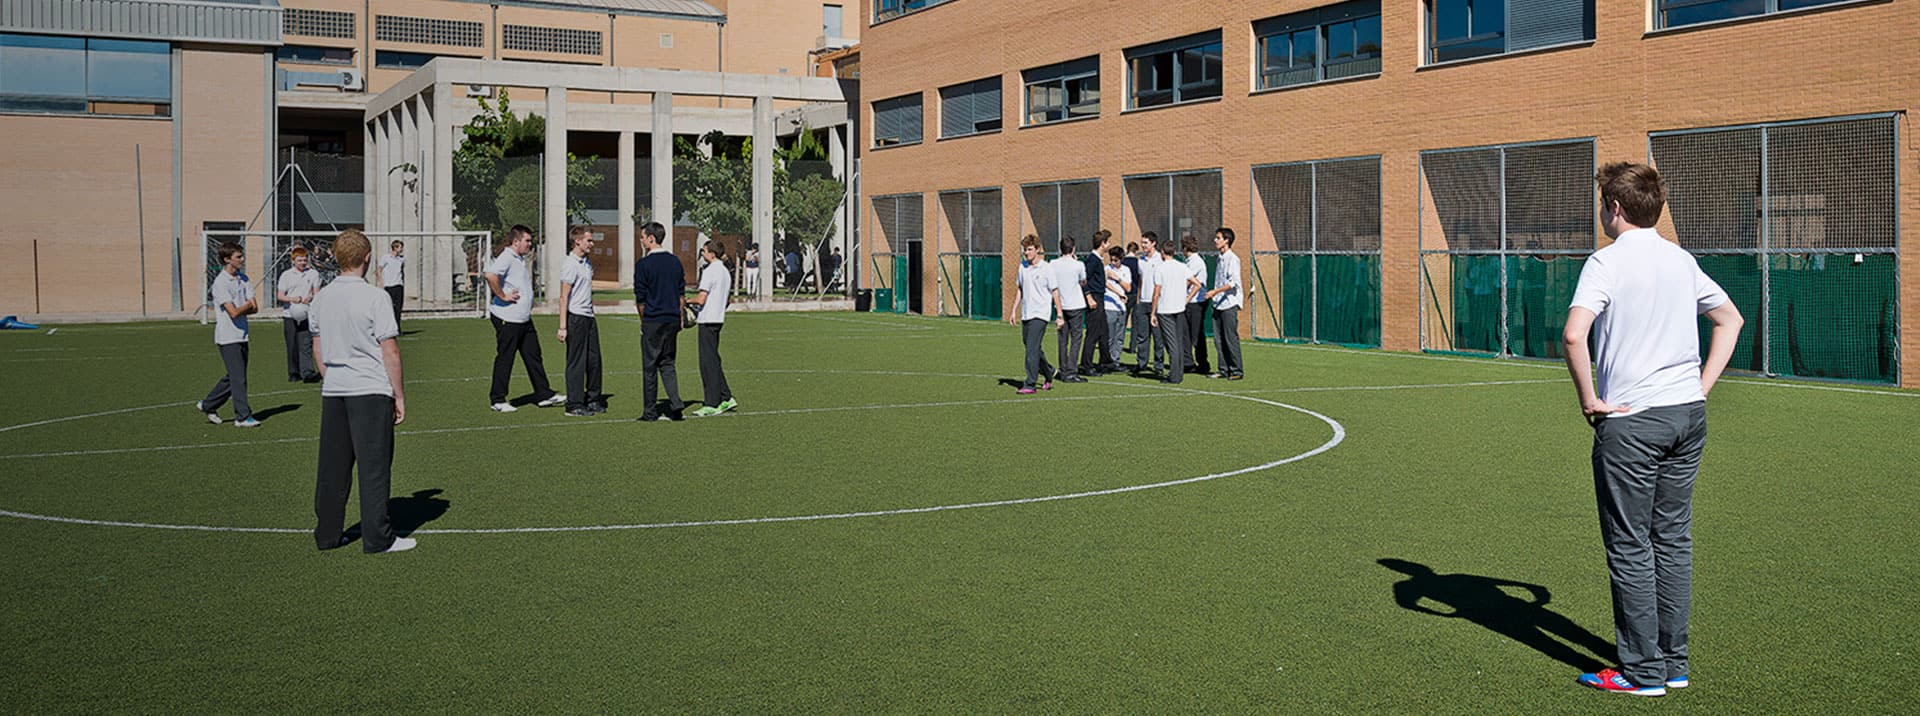 "King's College Alicante, rated ""Outstanding"" by Penta Inspectorate for British Schools Overseas"